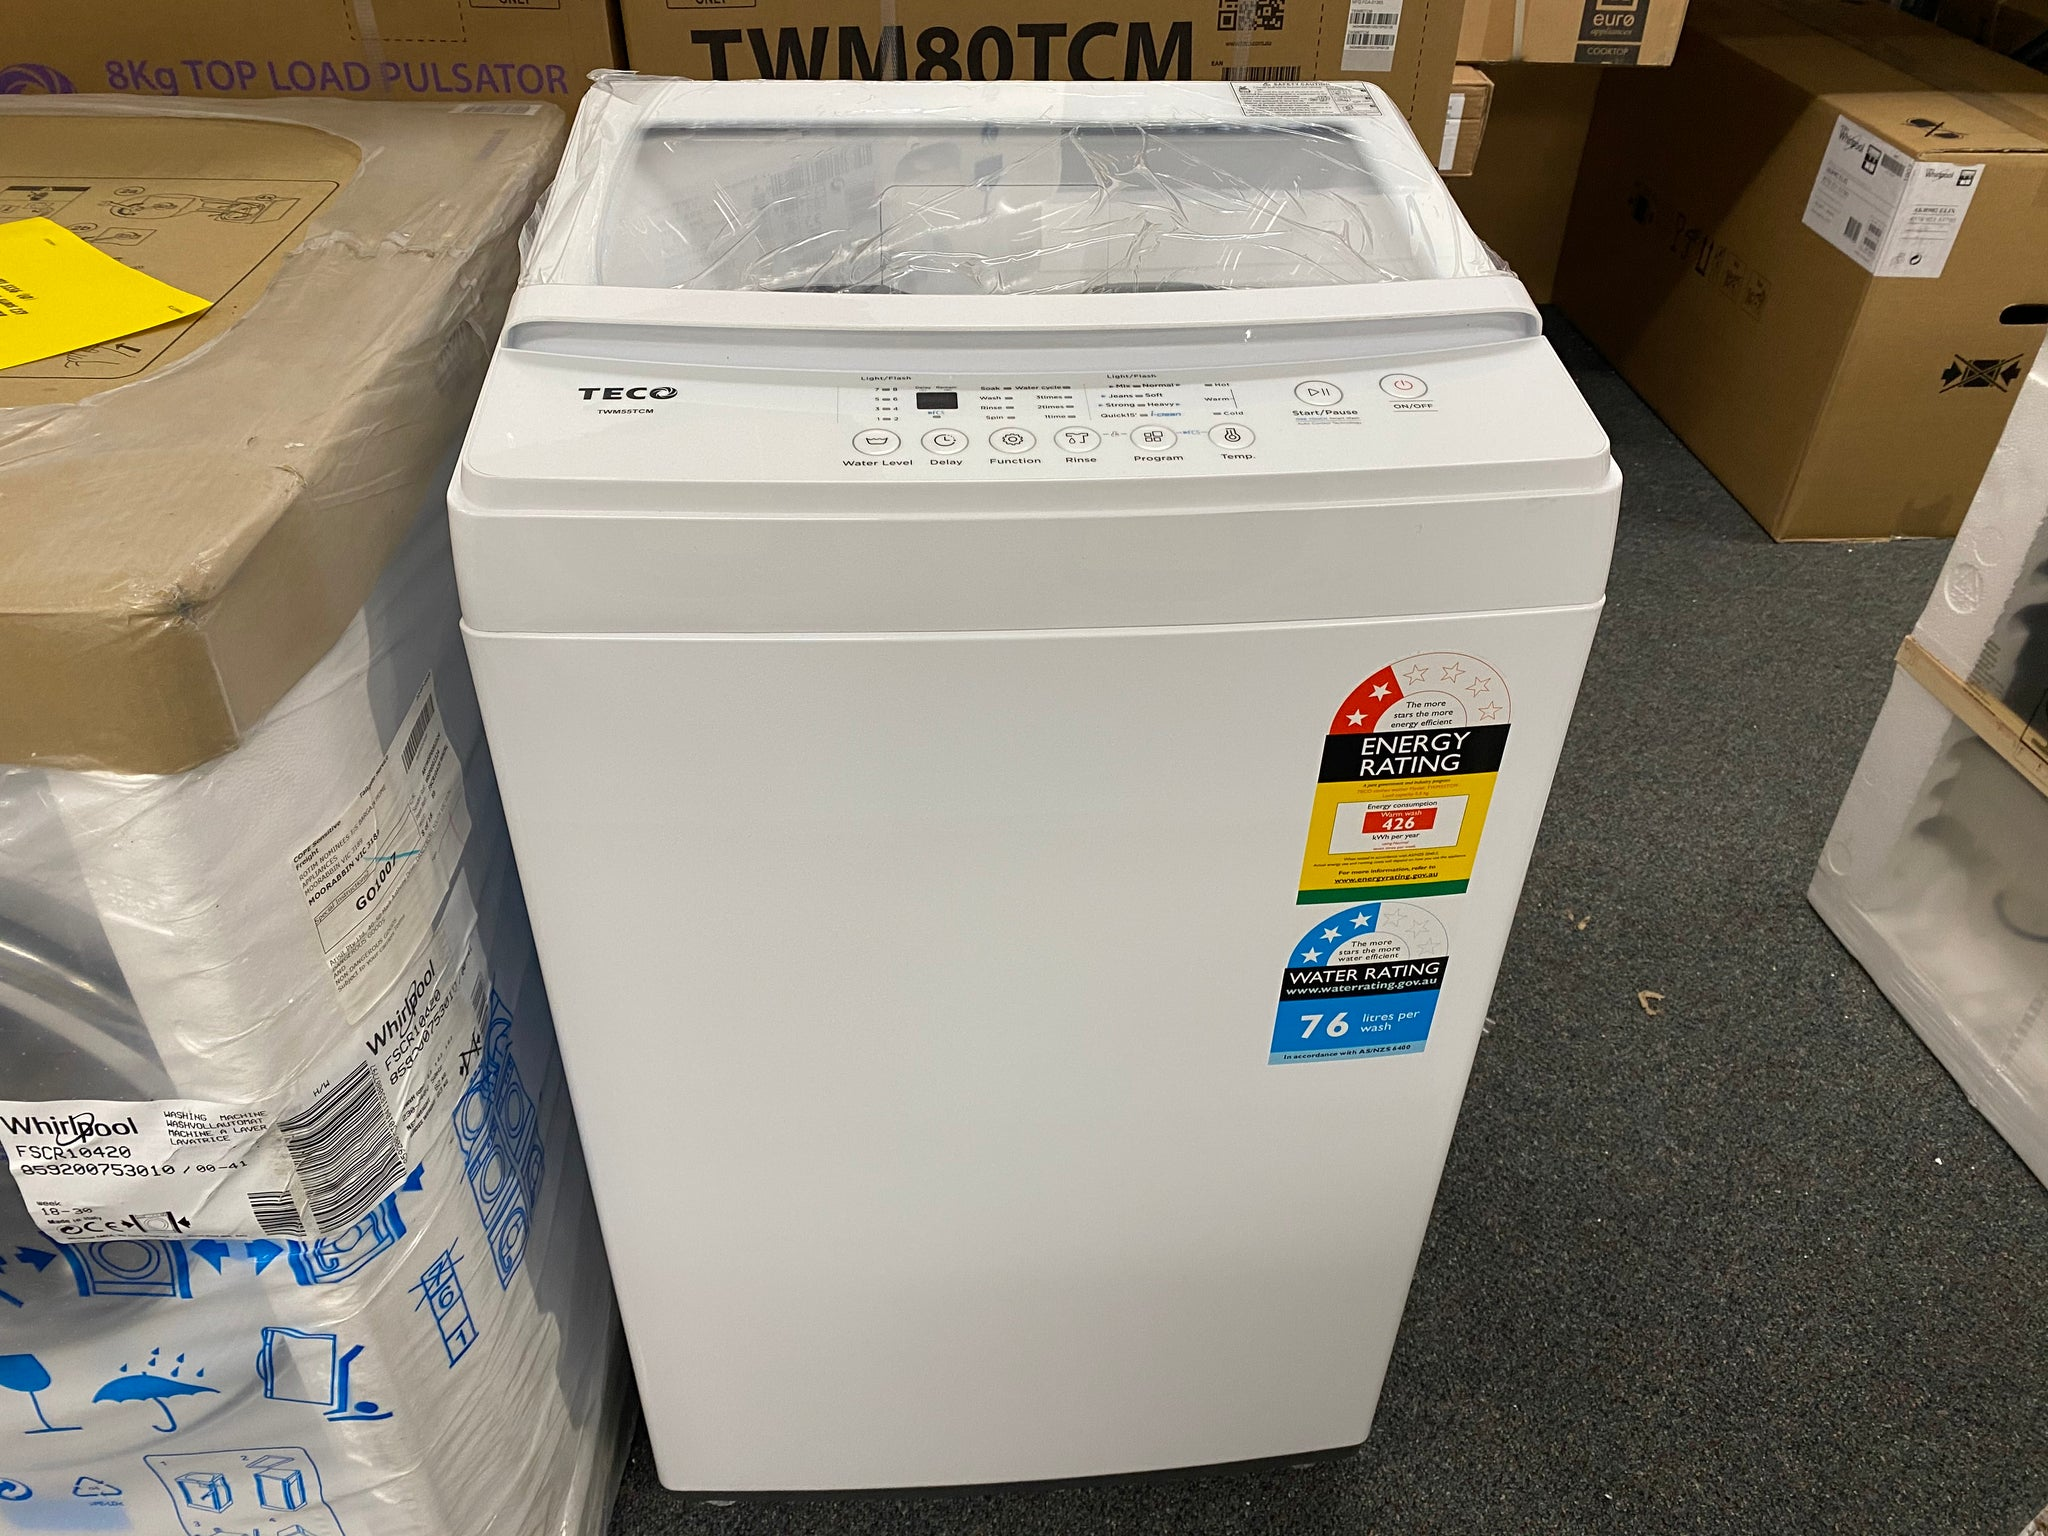 TECO TWM55TCM 5.5KG TOP LOAD WASHING MACHINE